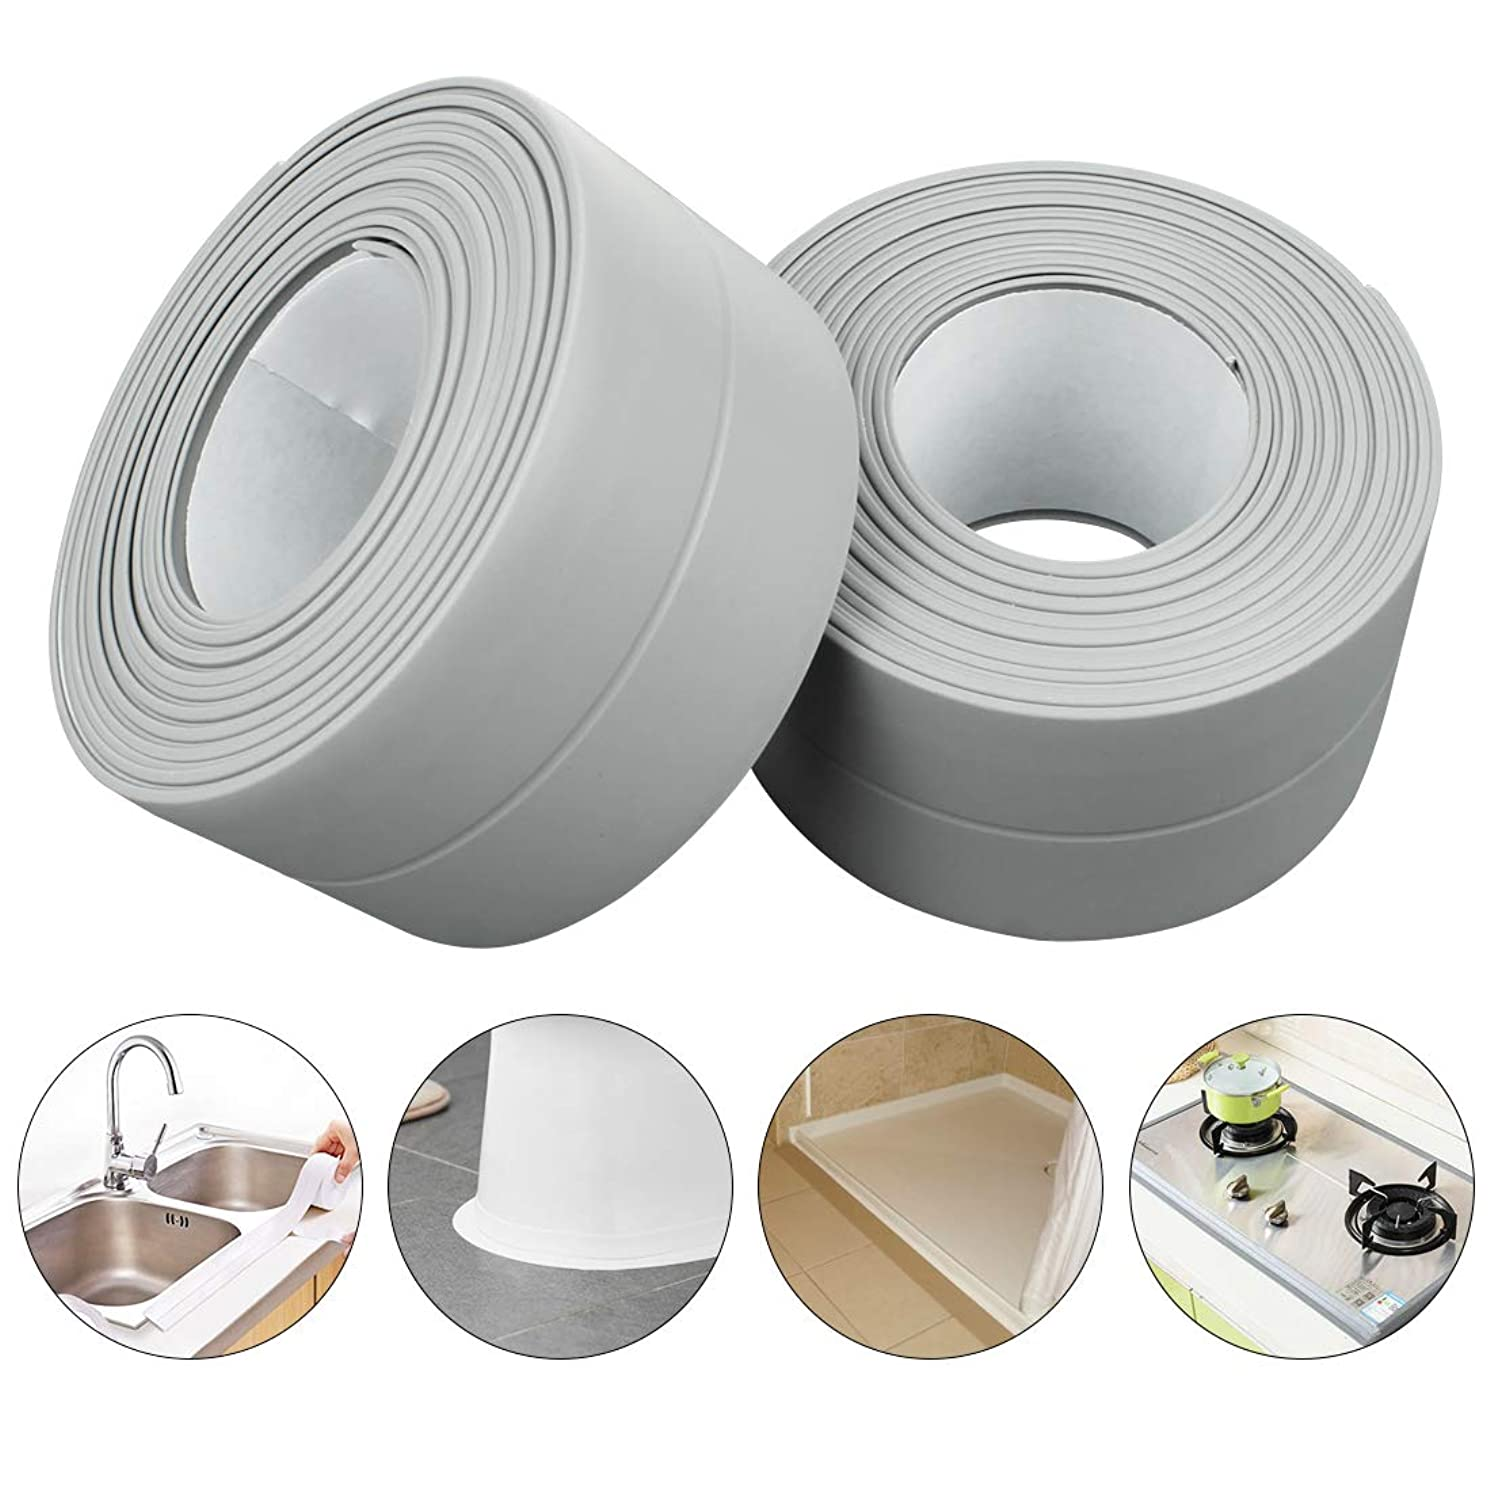 PVC Waterproof Sealing Tapes Pack of 2 Bathtub Caulk Strip Self Adhesive Waterproof Sealing Tape Edge Protector for Kitchen Countertop, Sink, Bathturb, Toilet, Gas Stove and Wall Coner, Grey